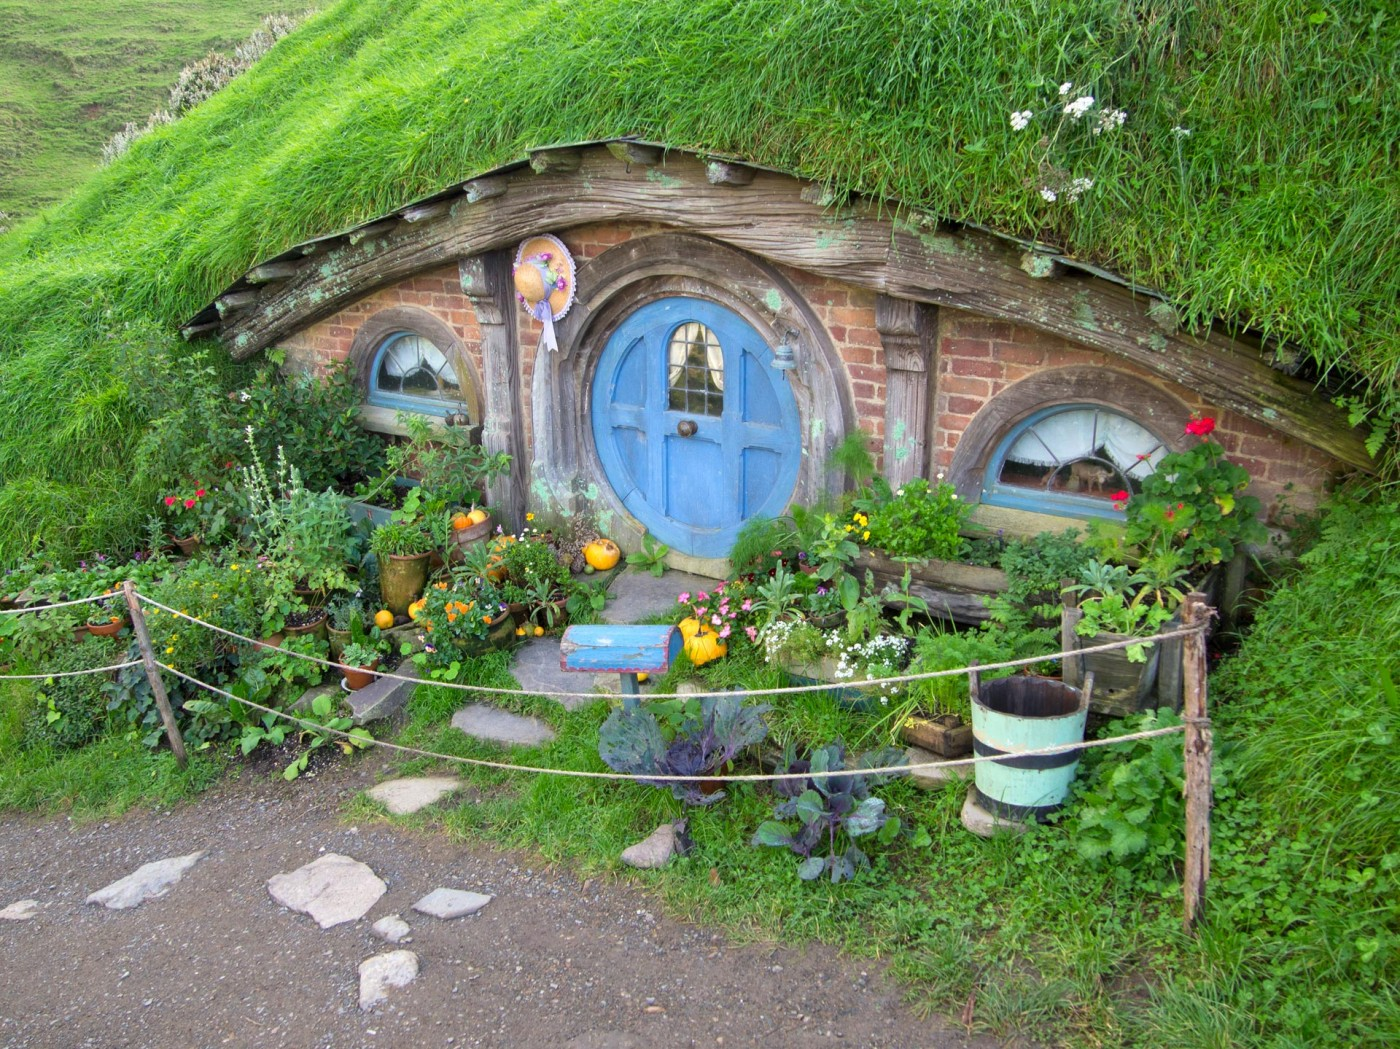 Hobbiton Movie Set Tours, Matamata, Herr der Ringe, der Hobbit, Neuseeland